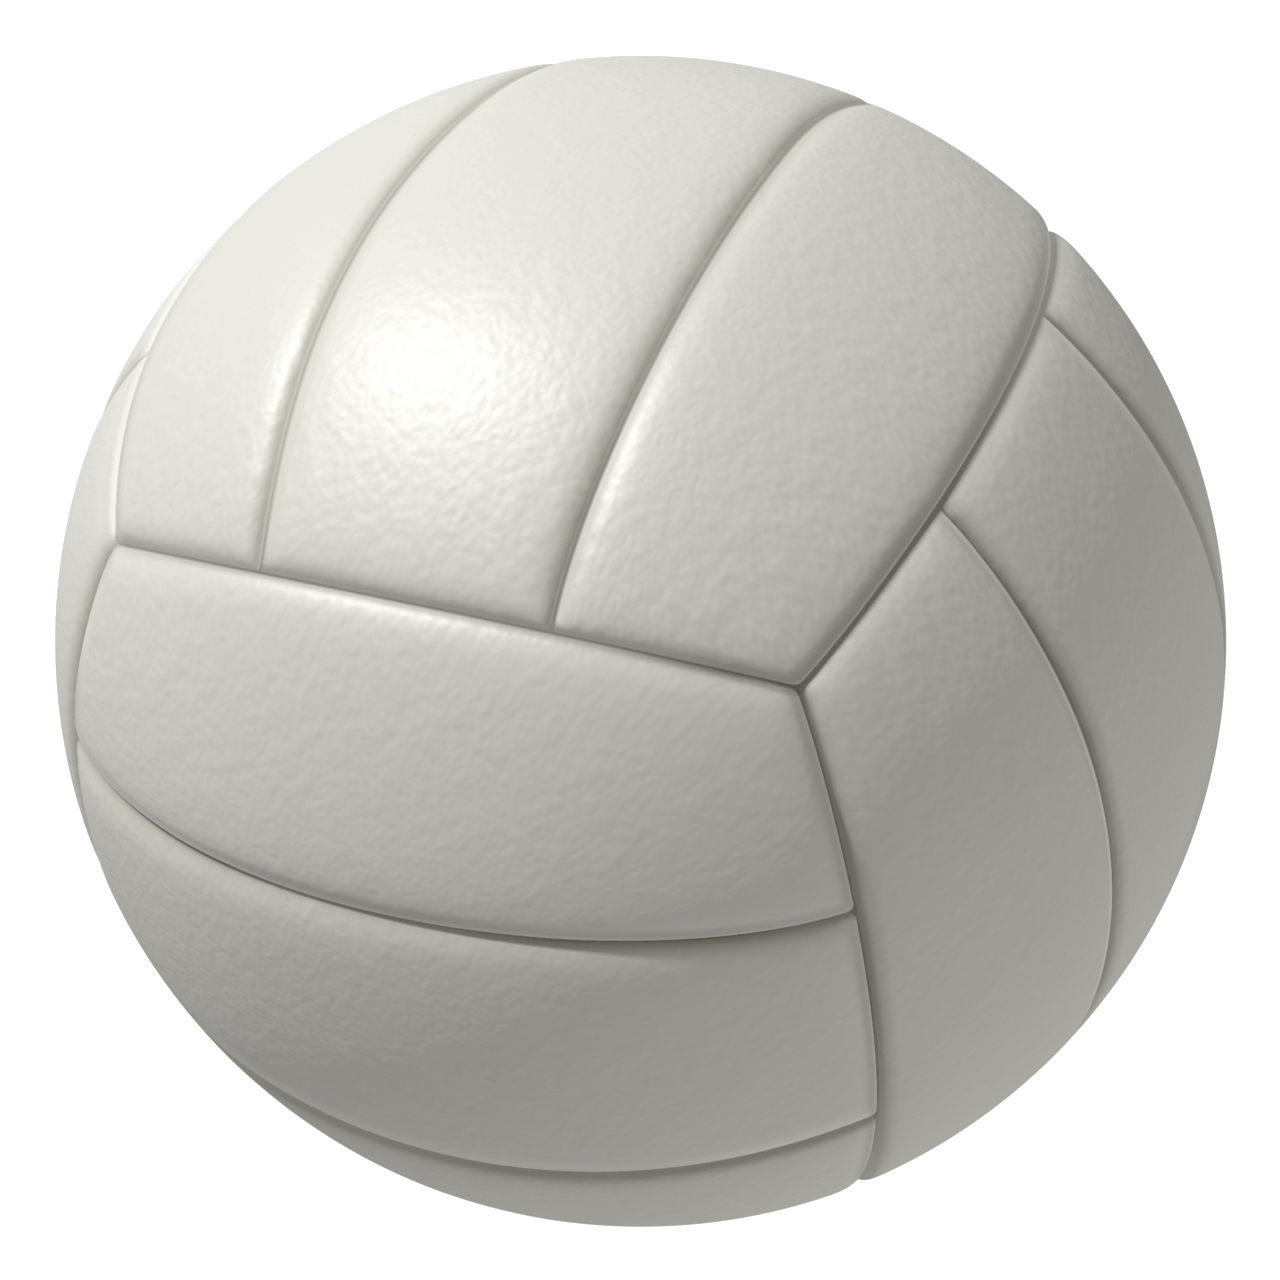 Volleyball Clipart Indoor Volleyball Volleyball Indoor Volleyball Transparent Free For Download On Webstockreview 2020